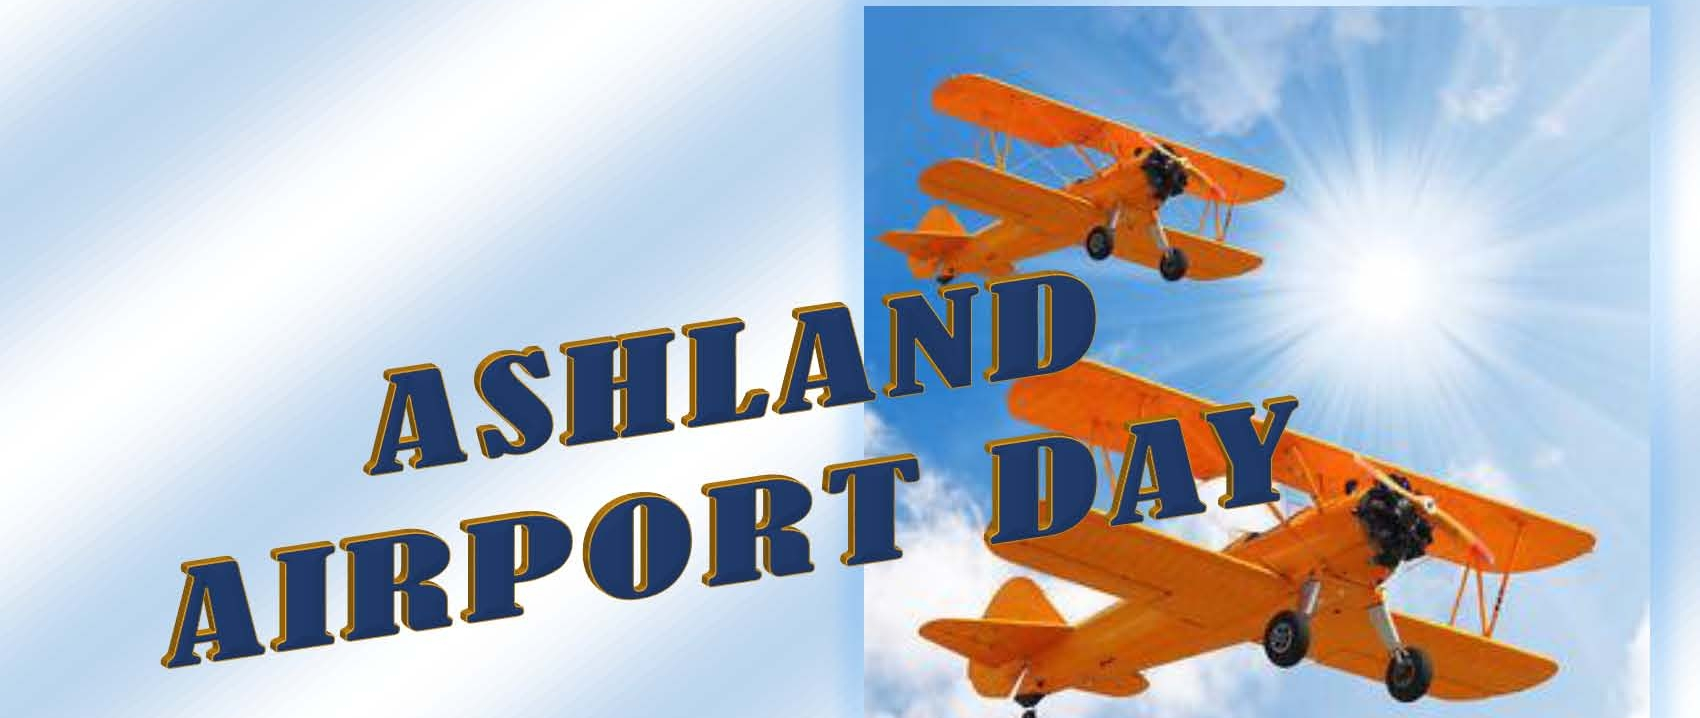 ASHLAND AIRPORT DAY - What to do in Southern Oregon - Things to do in Ashland.jpg